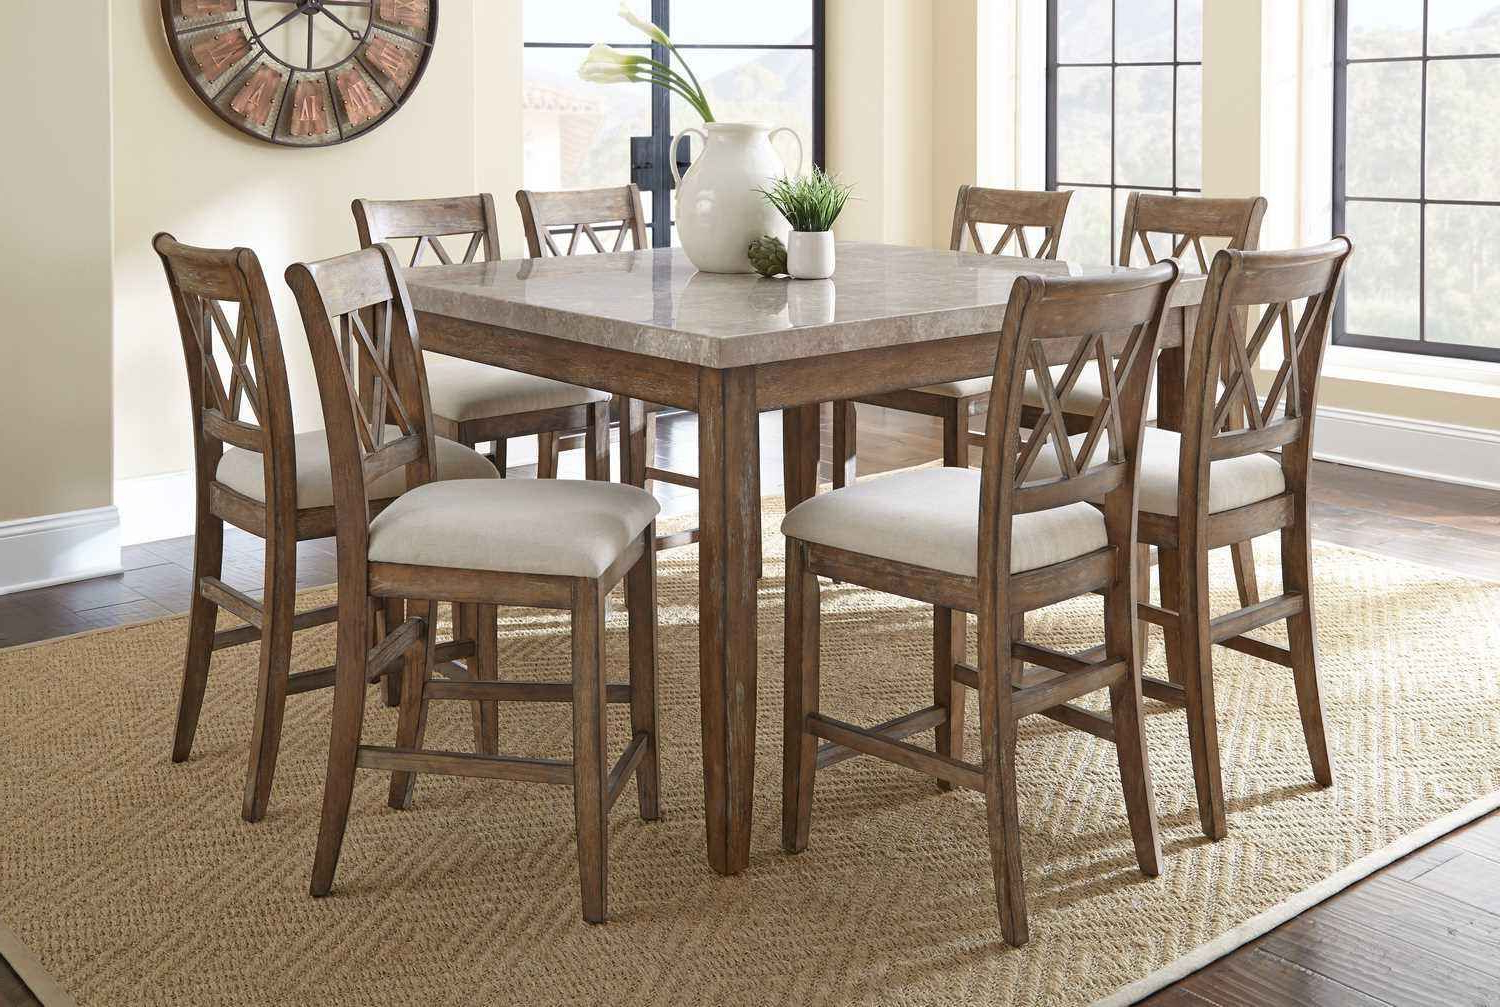 Franco 9 Piece 54 Inch Square Counter Height Table W/ Marble Within Fashionable Transitional 4 Seating Square Casual Dining Tables (View 9 of 25)